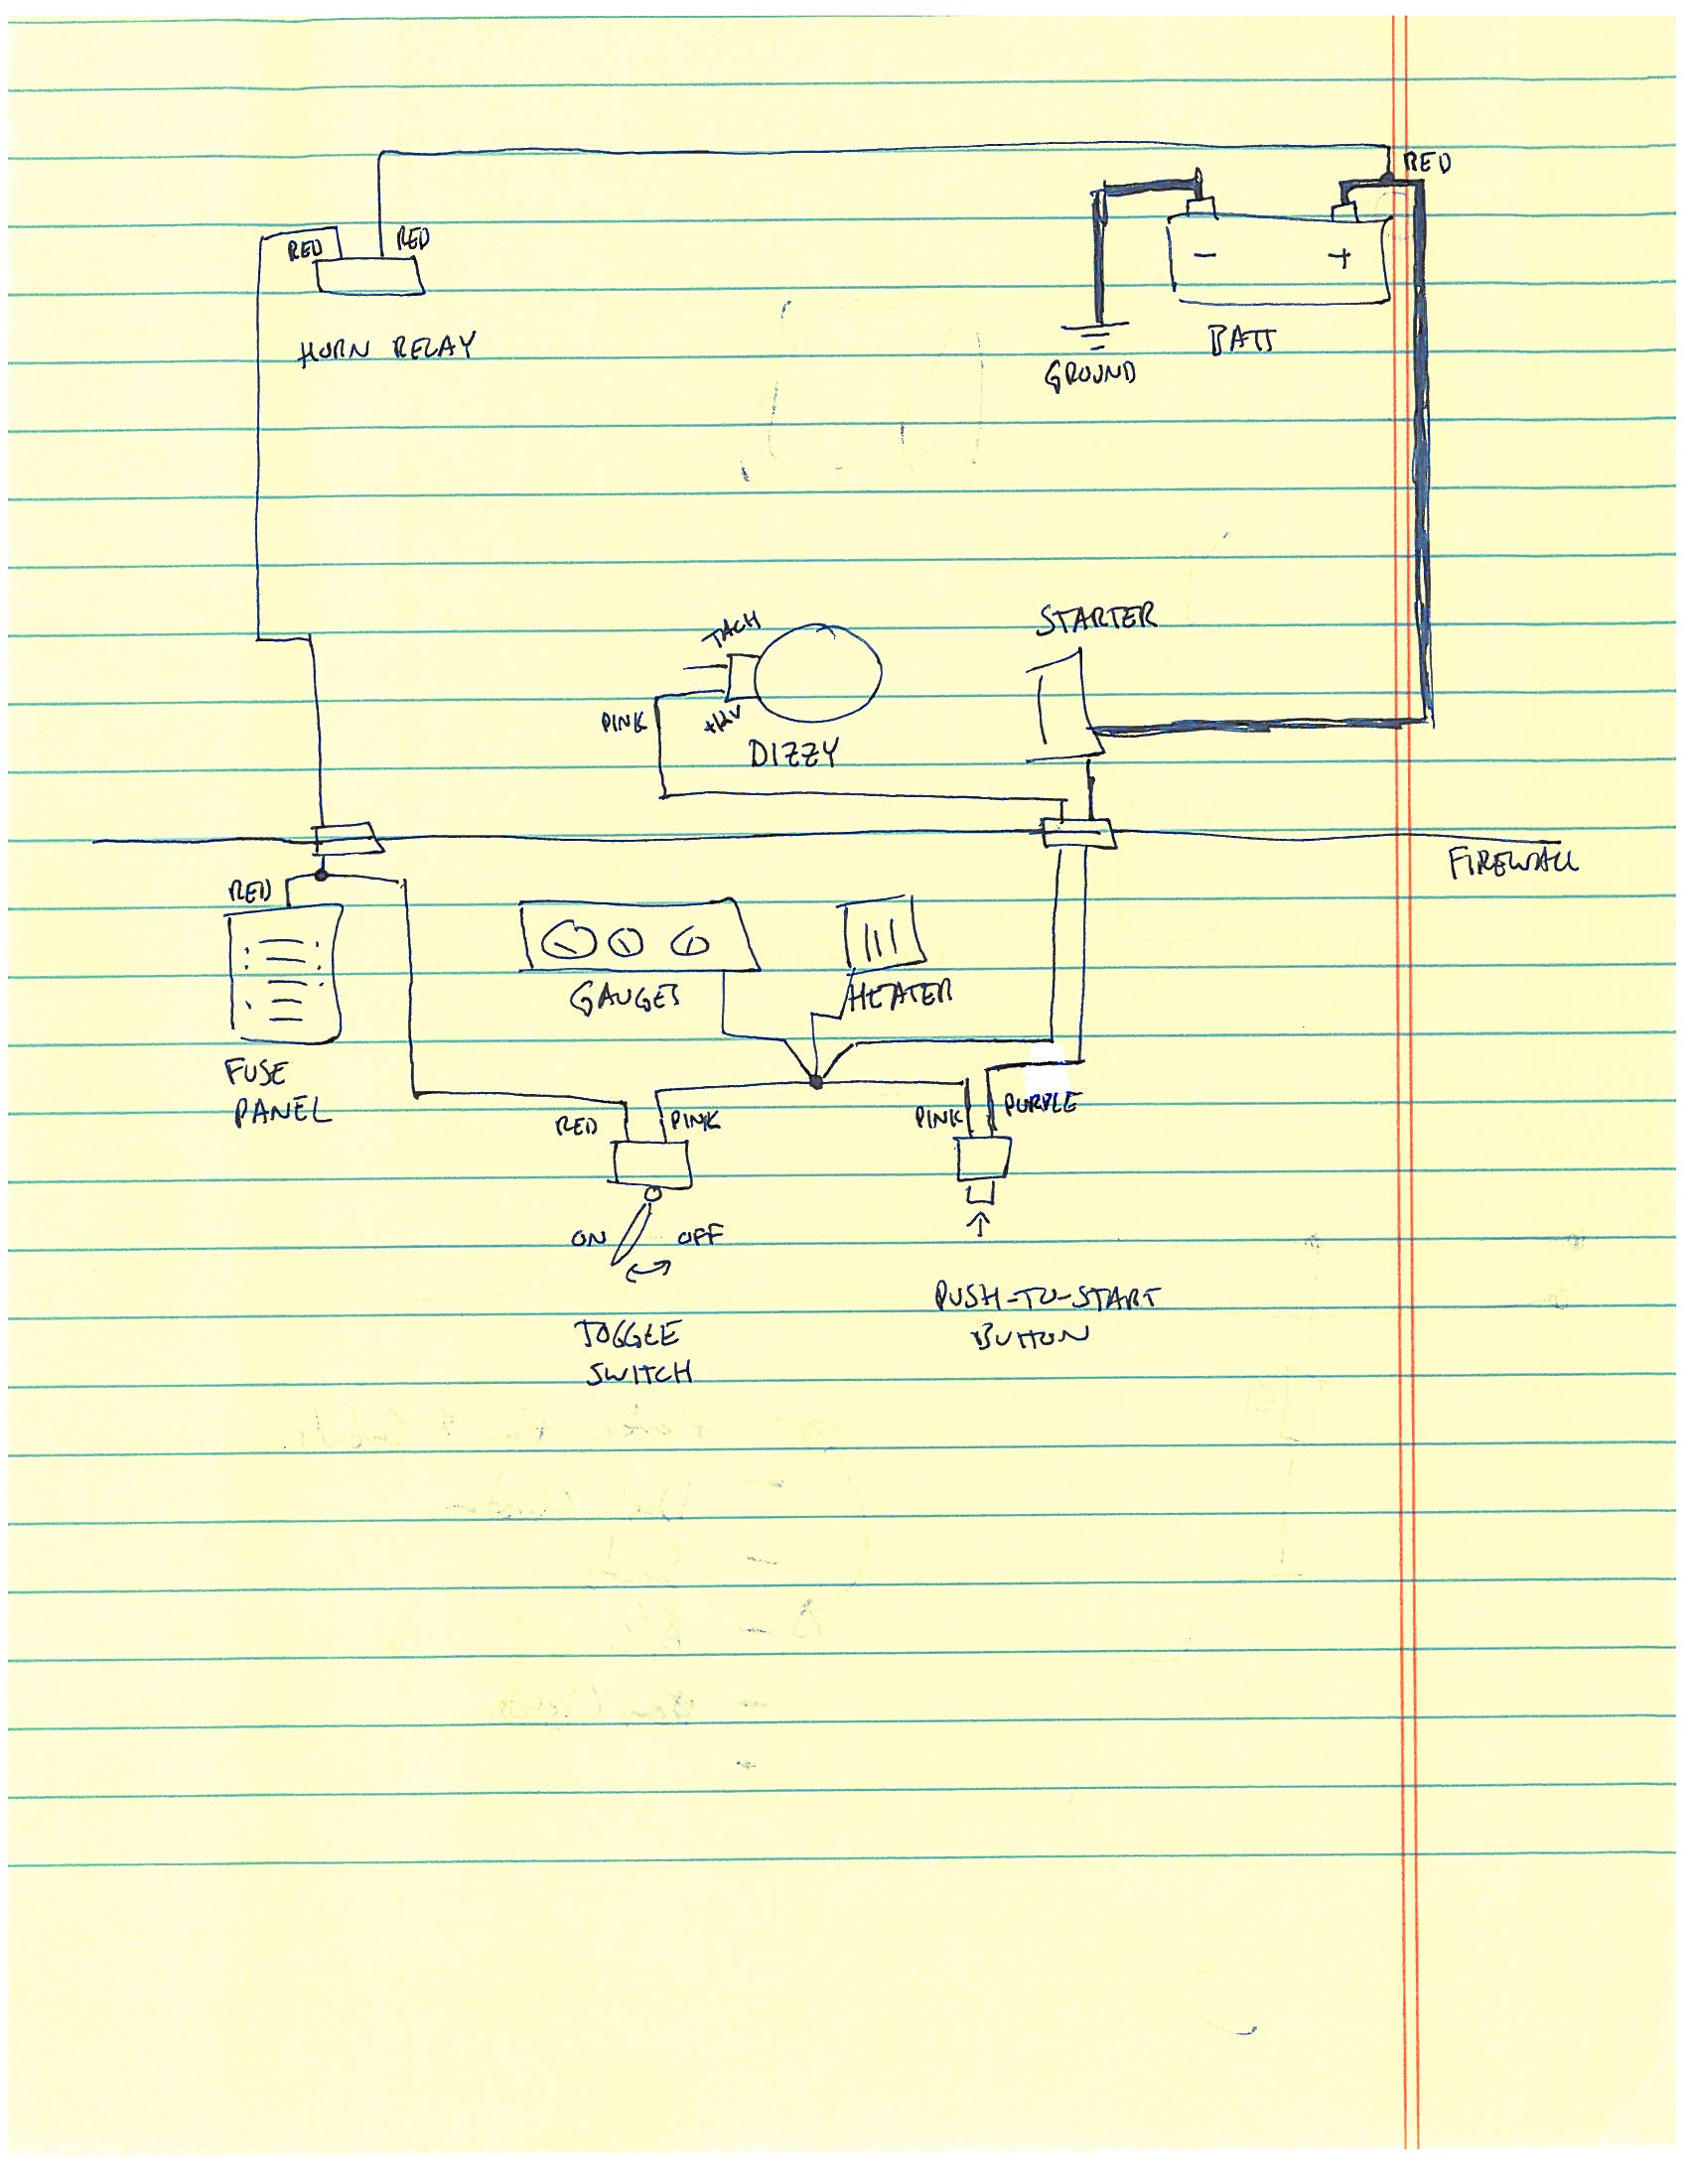 1972 Chevy Truck Ignition Switch Wiring Diagram : chevy, truck, ignition, switch, wiring, diagram, Ignition, Wiring, Diagram, Rover, Speakers